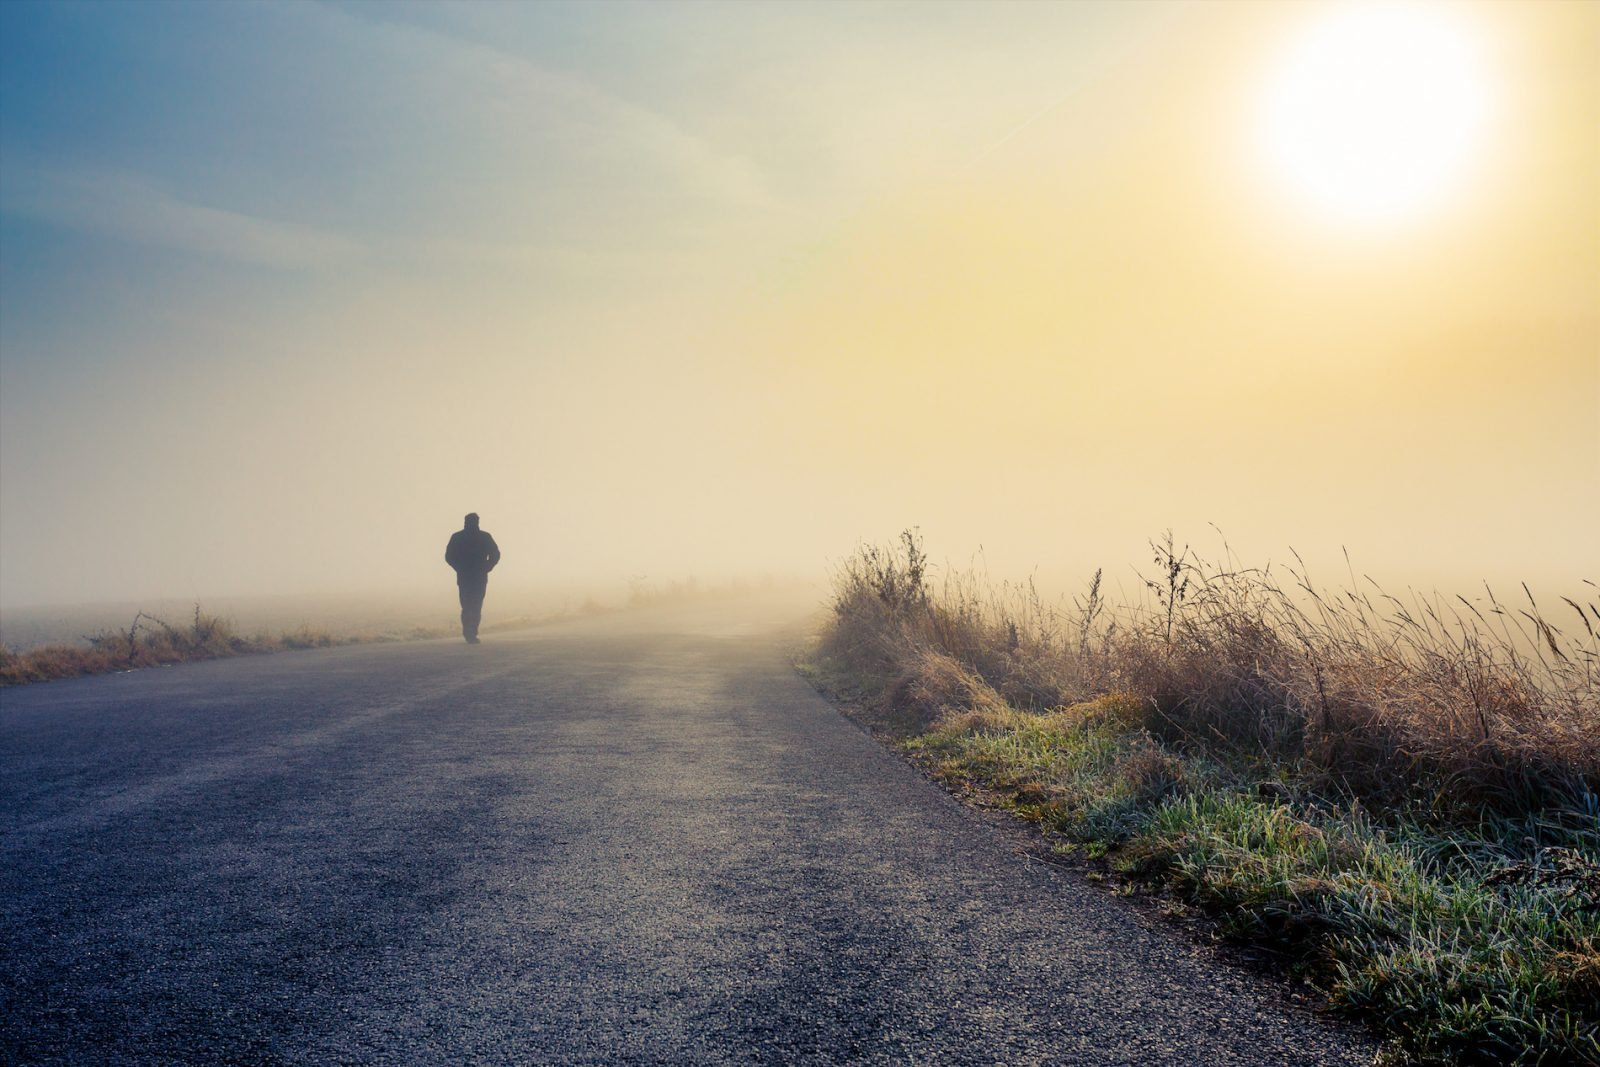 A person walk into the misty foggy road in a dramatic mystic sunrise scene with abstract colors